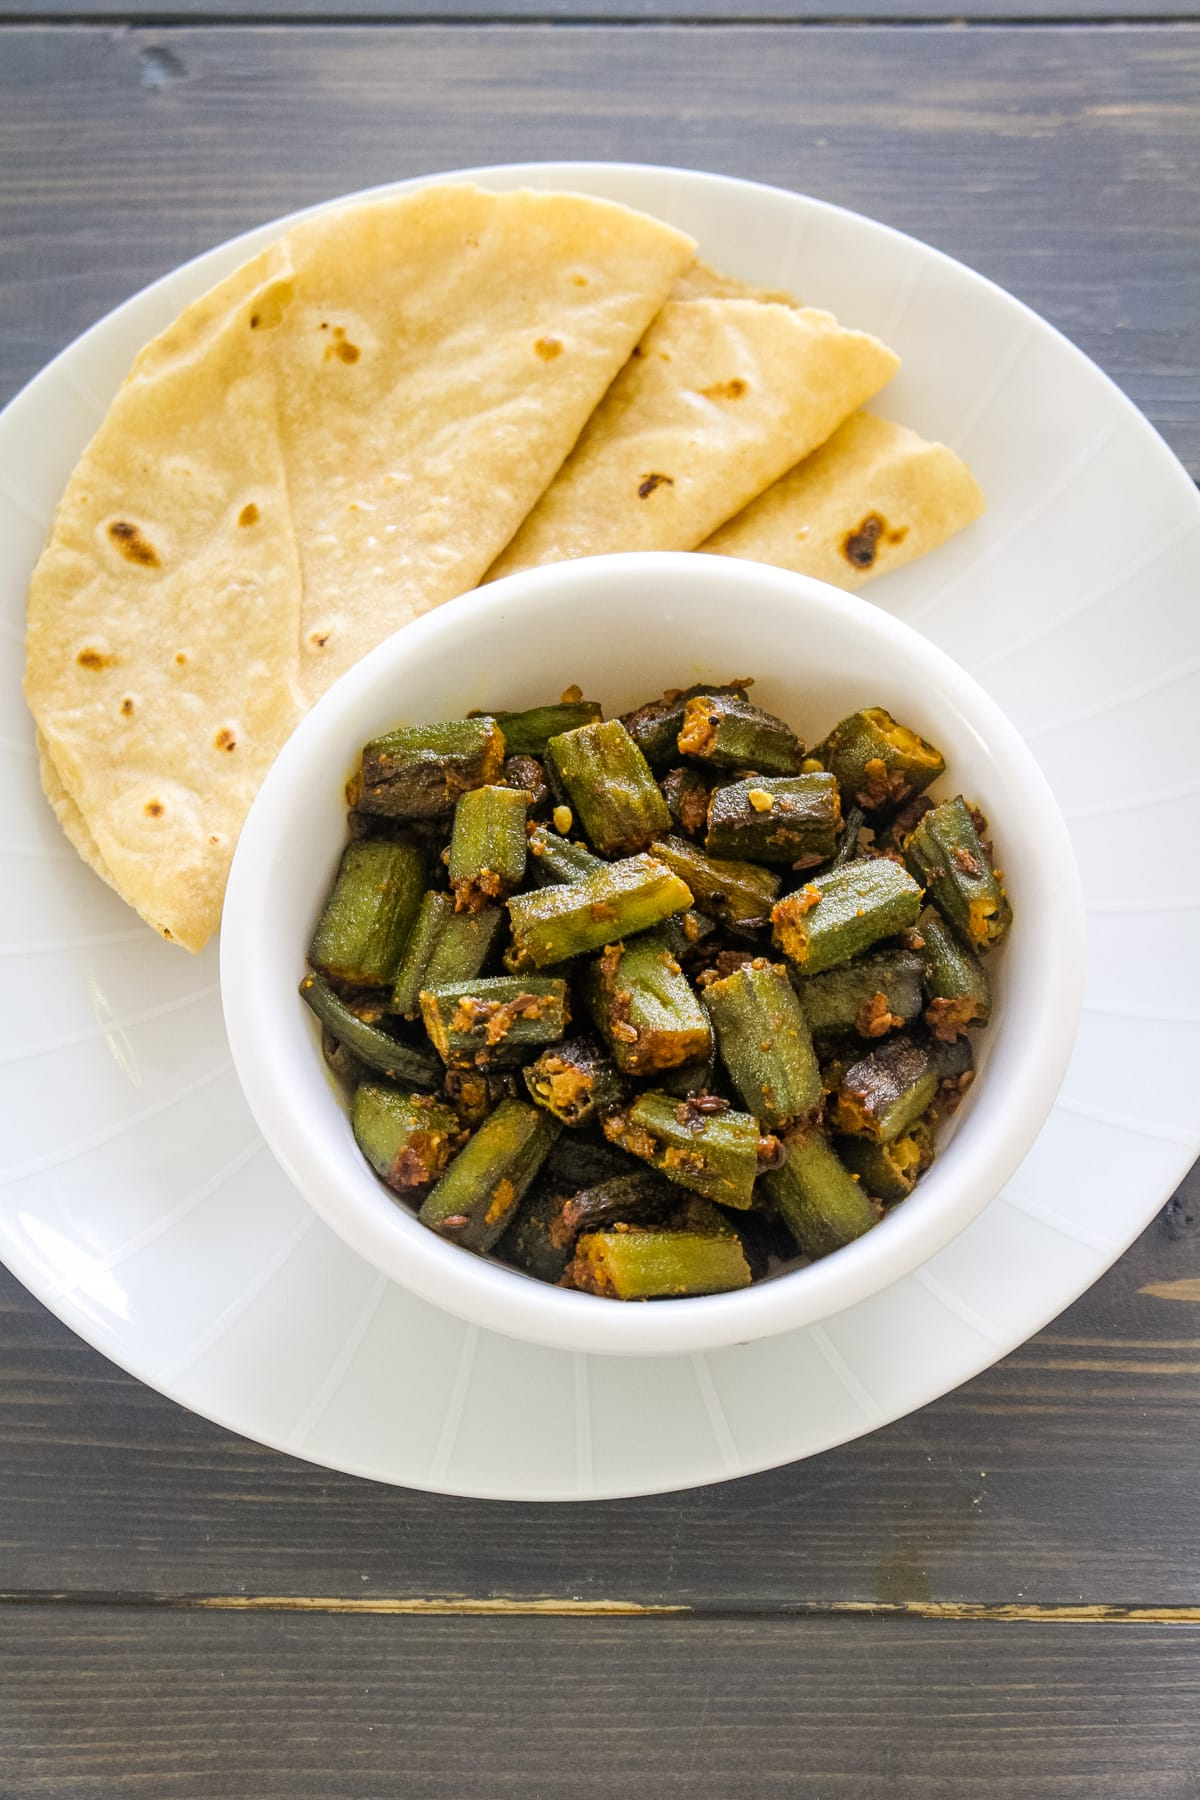 Achari bhindi served with a bowl with 3 phulka roti.